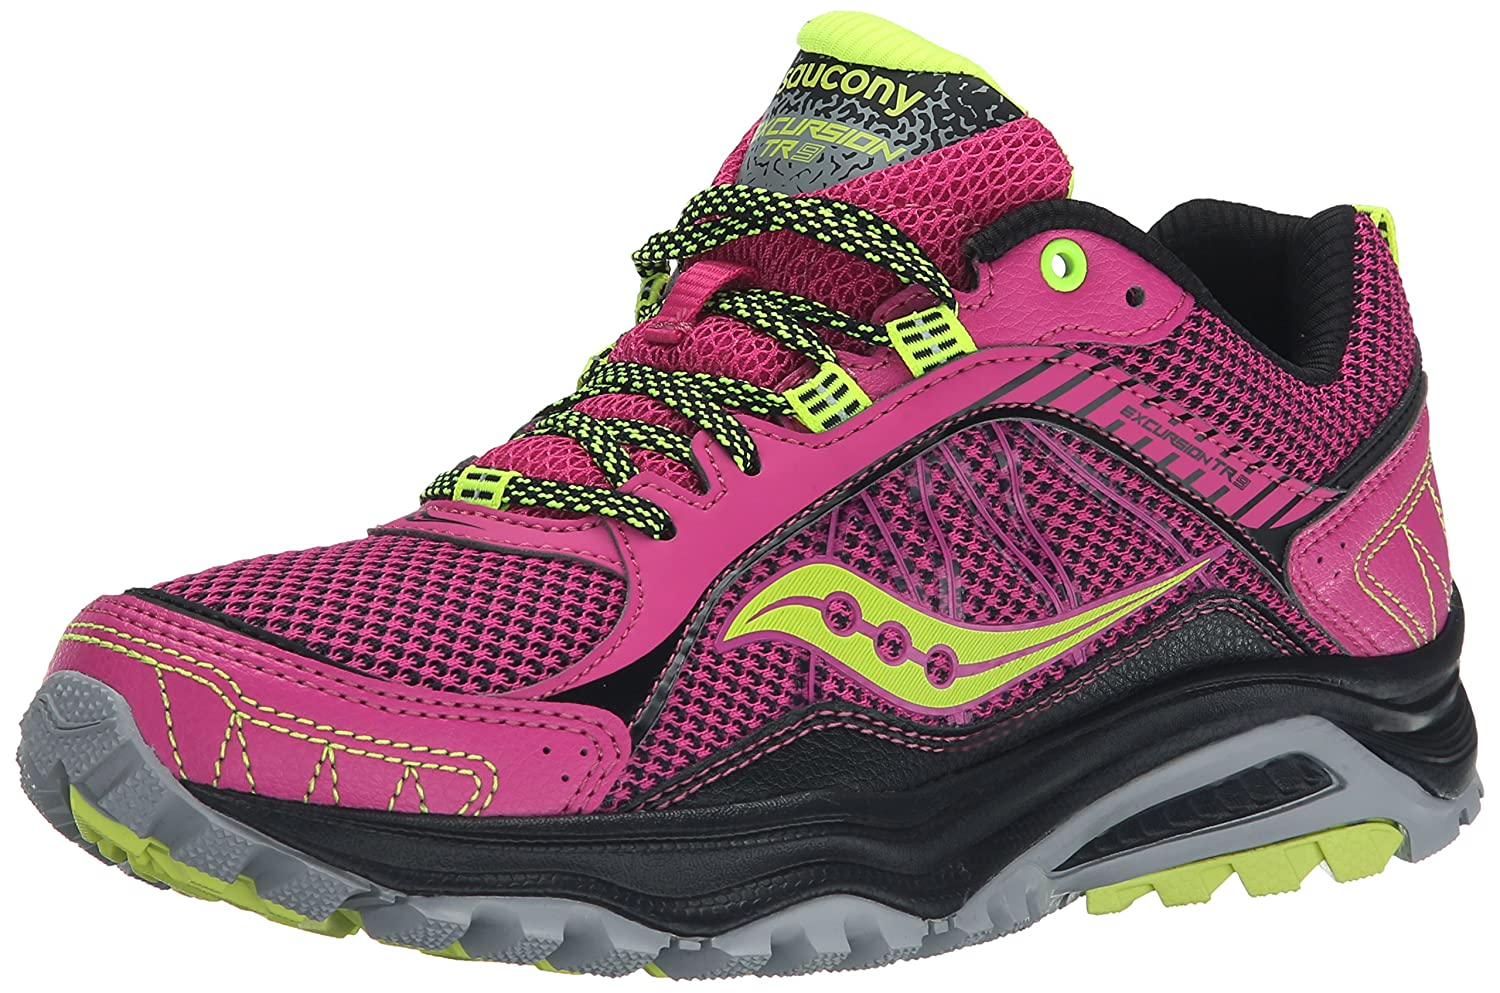 Saucony Women's Grid Excursion TR9 Trail Running Shoe B00Z7959IW 7.5 B(M) US|Pink/Grey/Citron